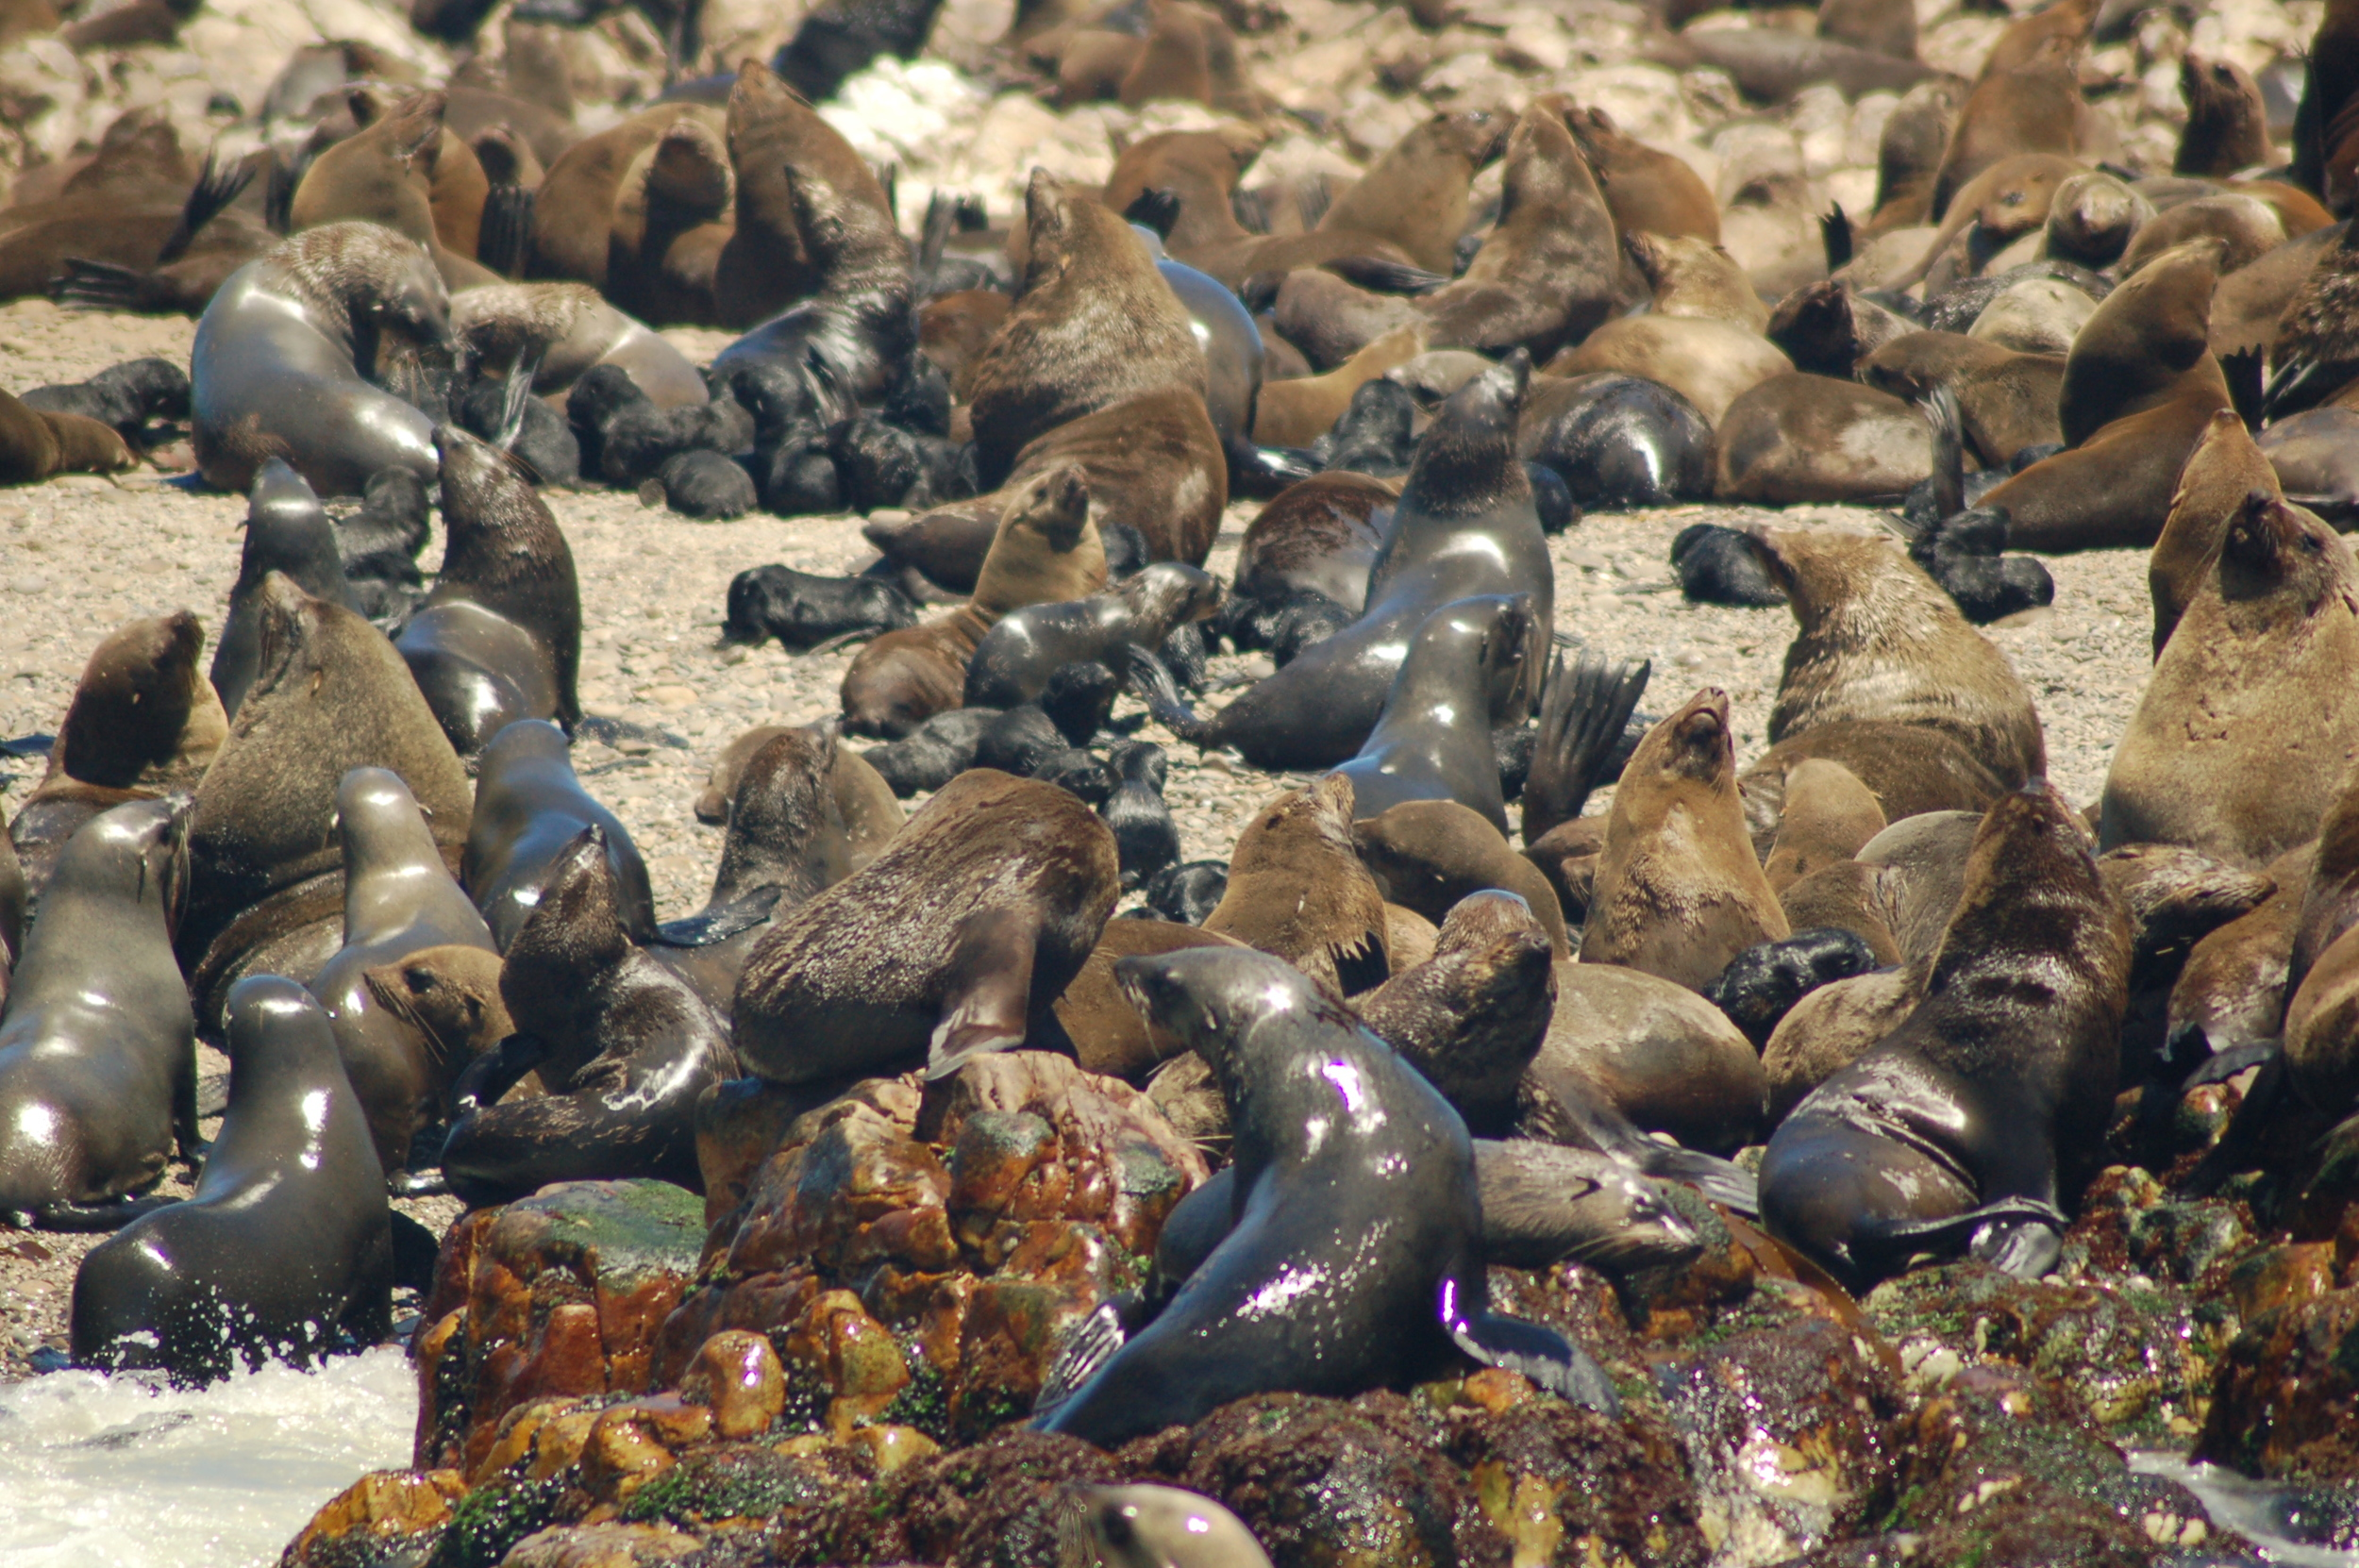 Cape Fur Seals  (  Arctocephalus pusillus  ) , South Africa  photo credit: Caroline Good